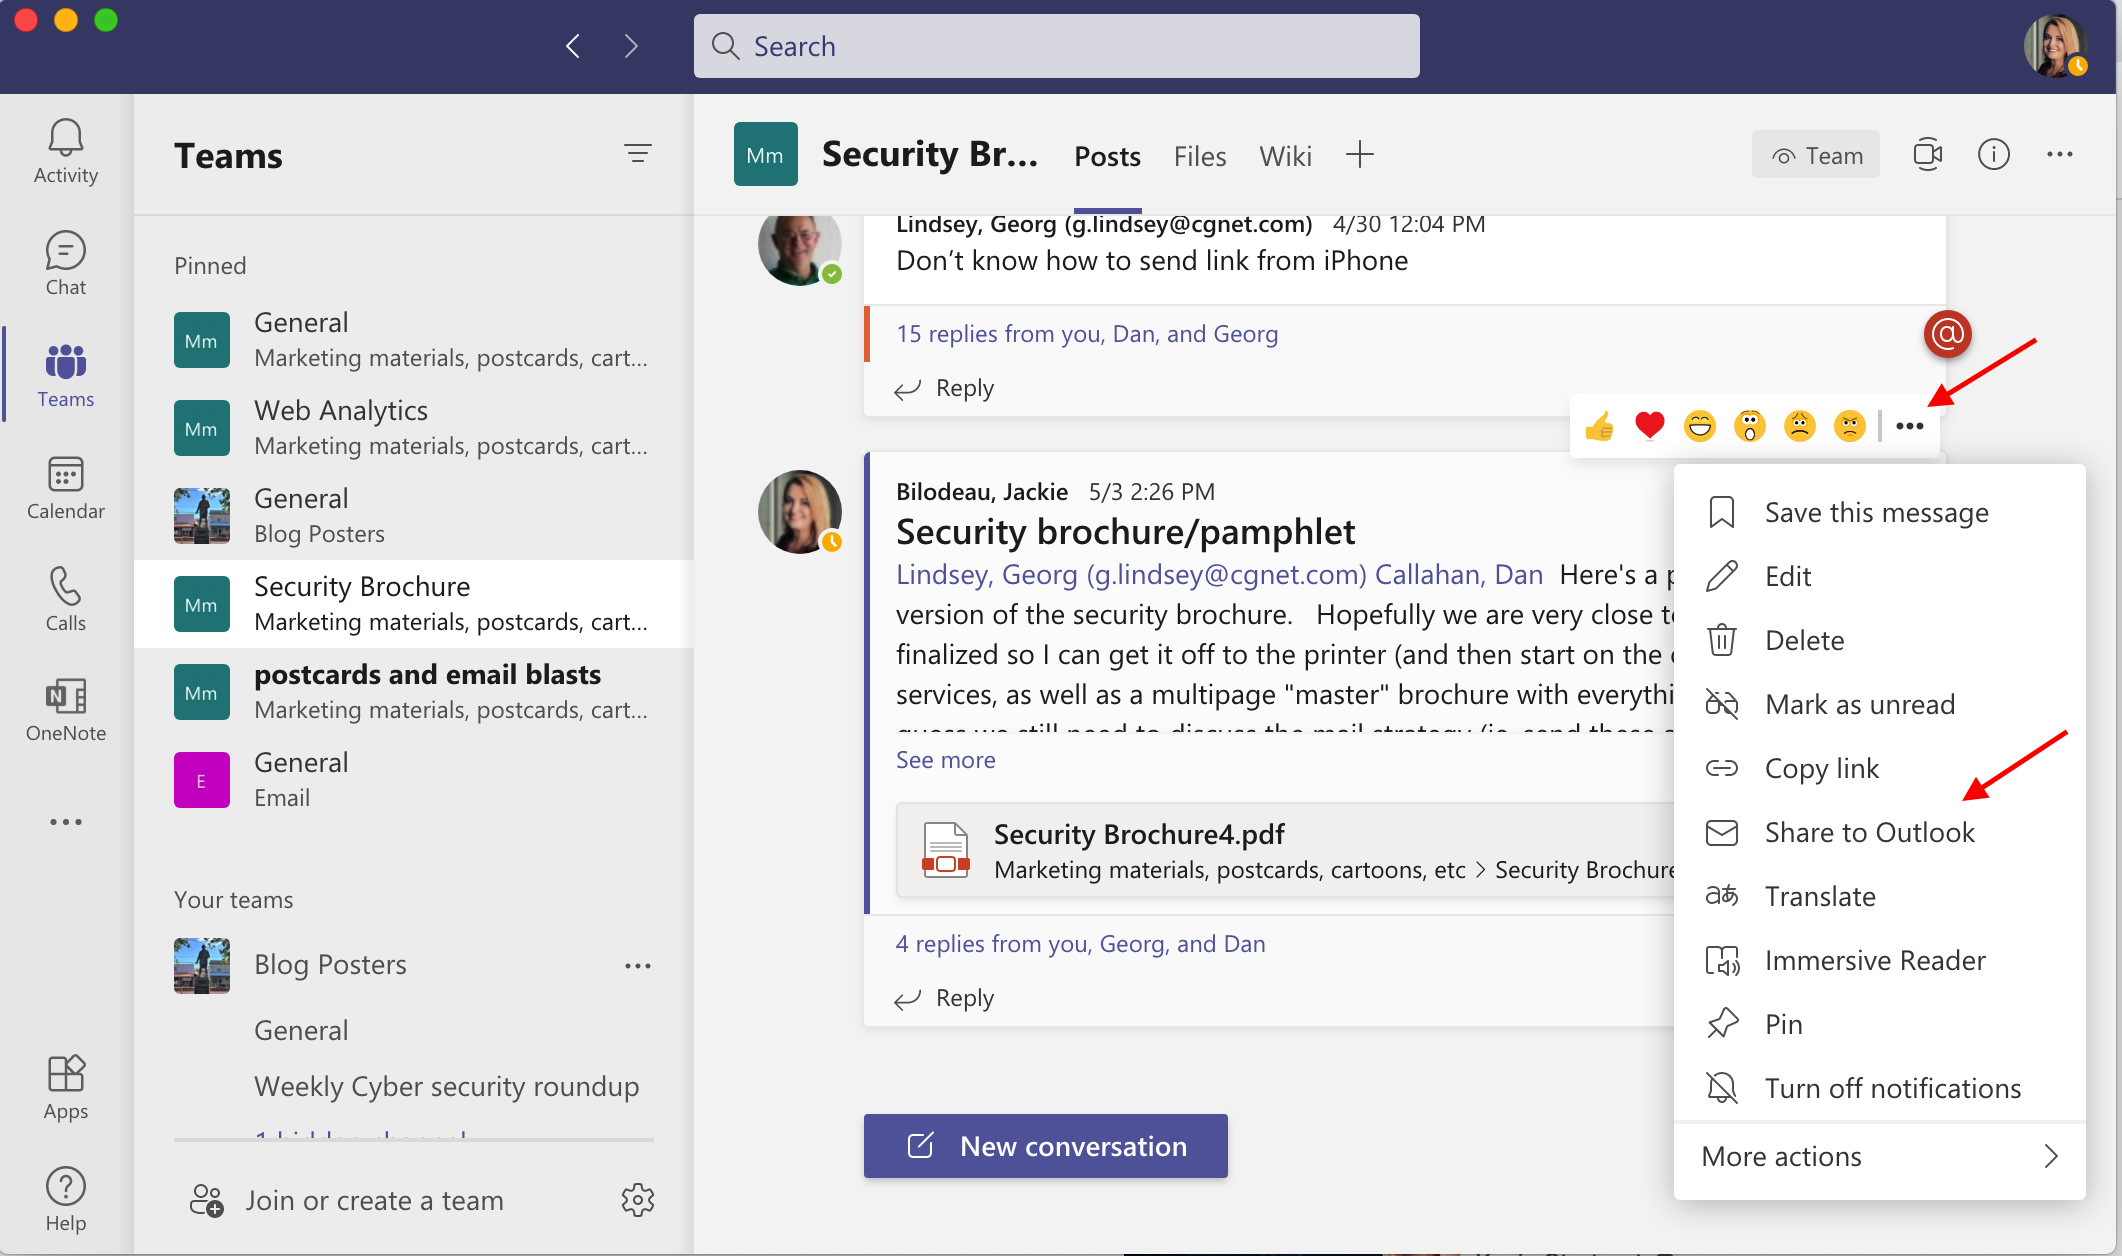 Share from Teams to Outlook